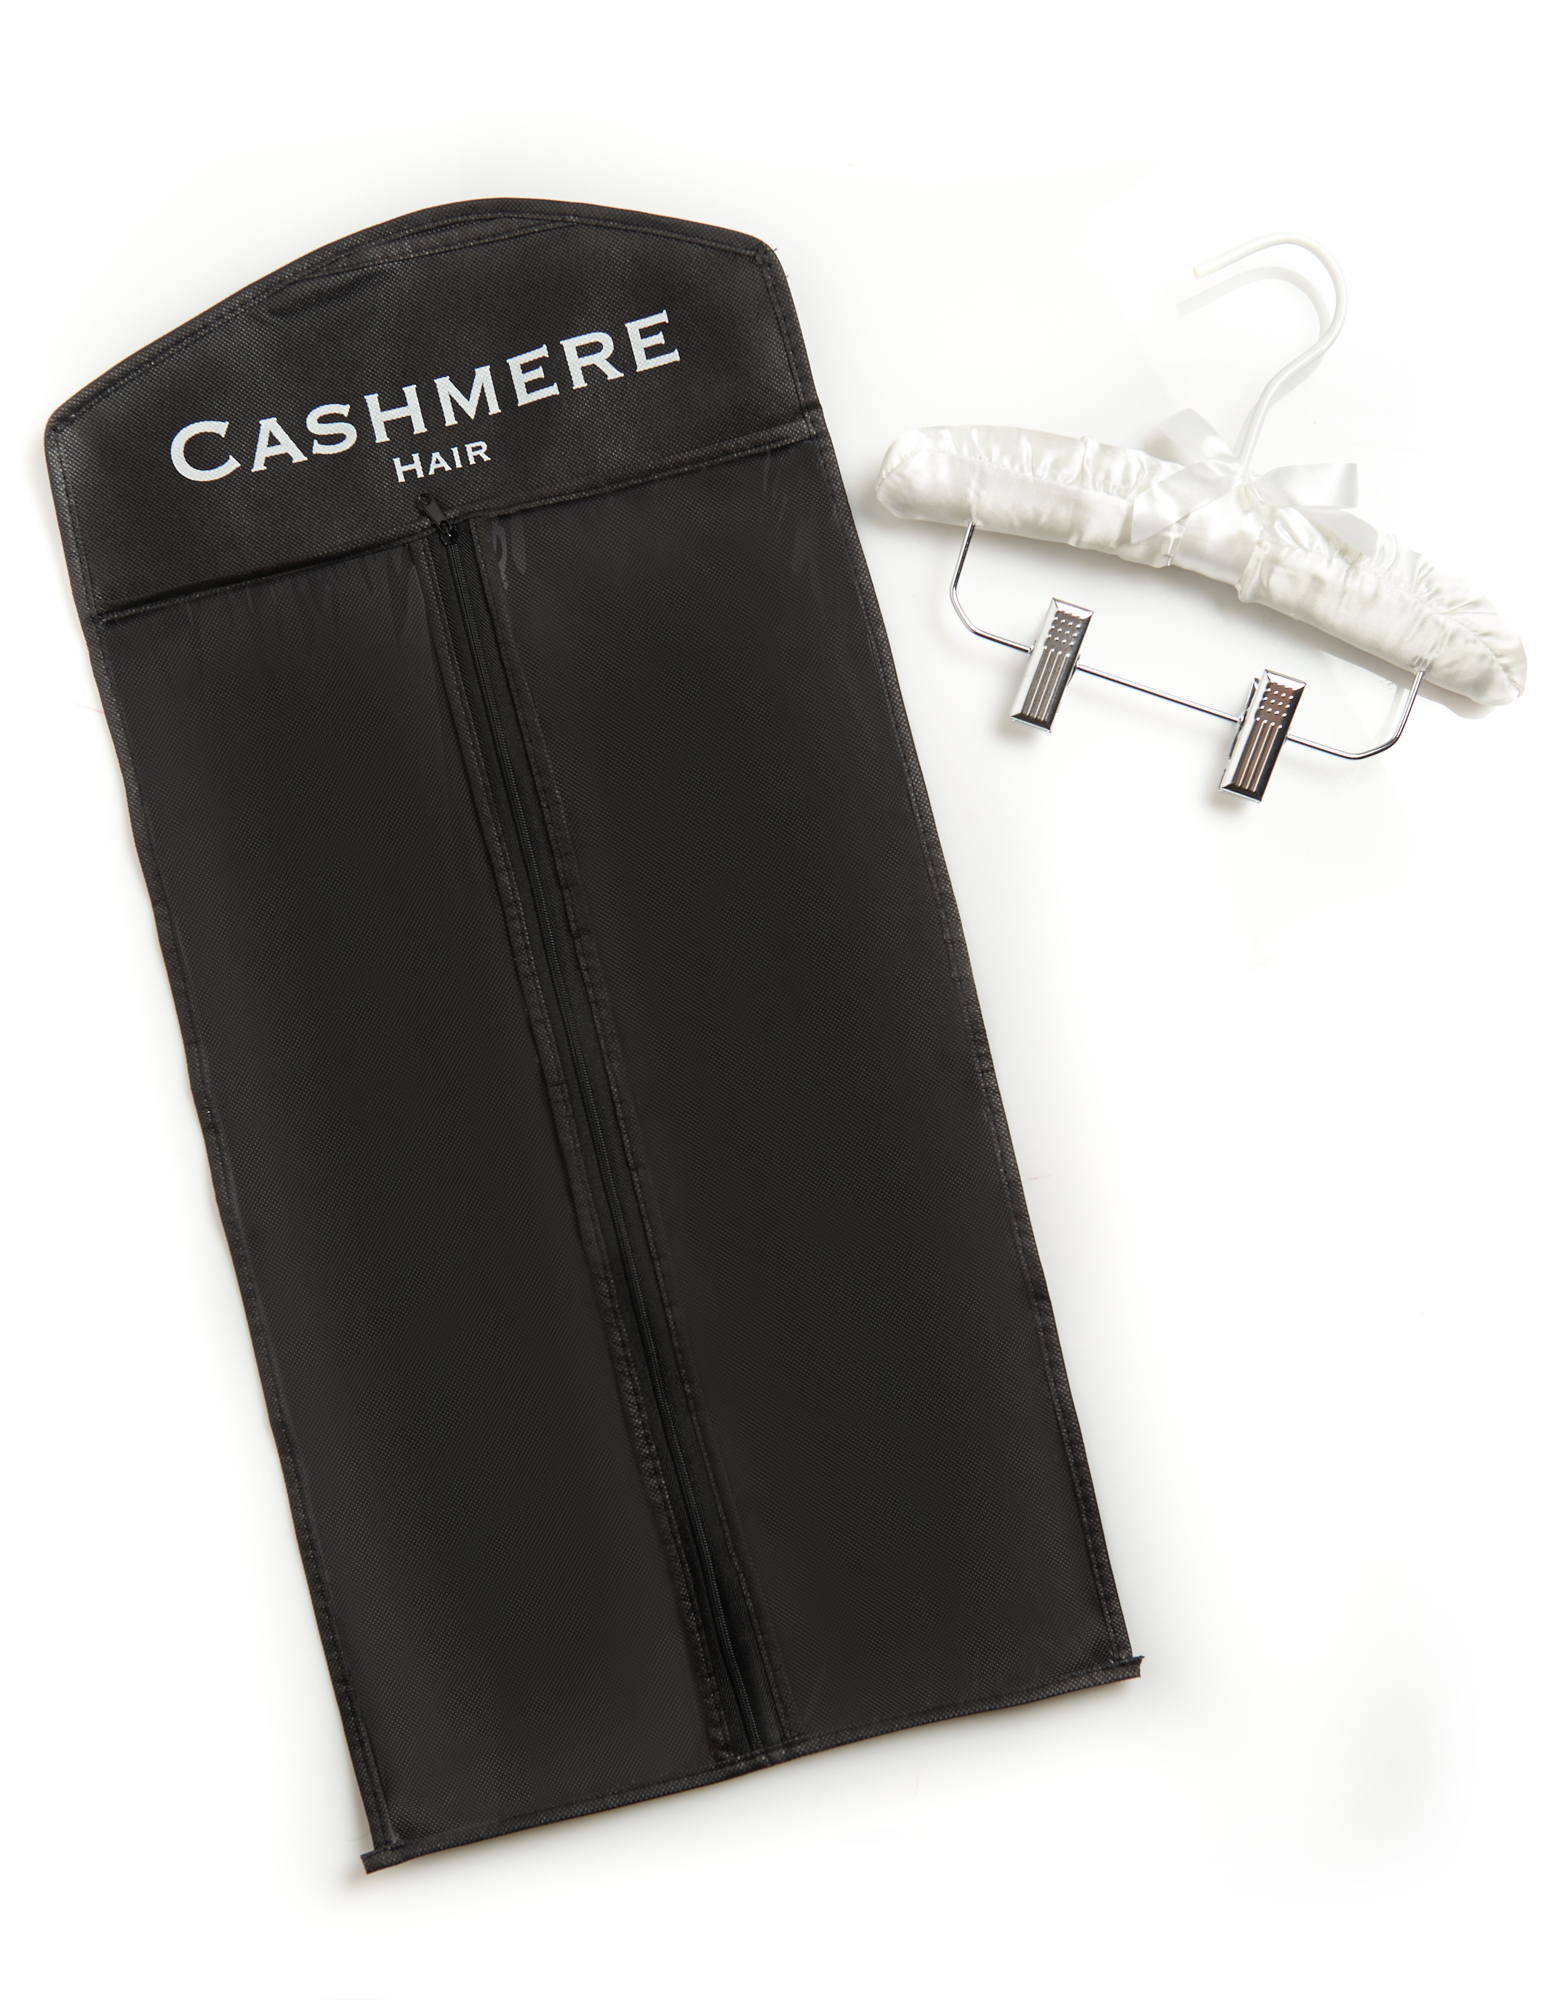 Cashmere Hair Luxury Bag